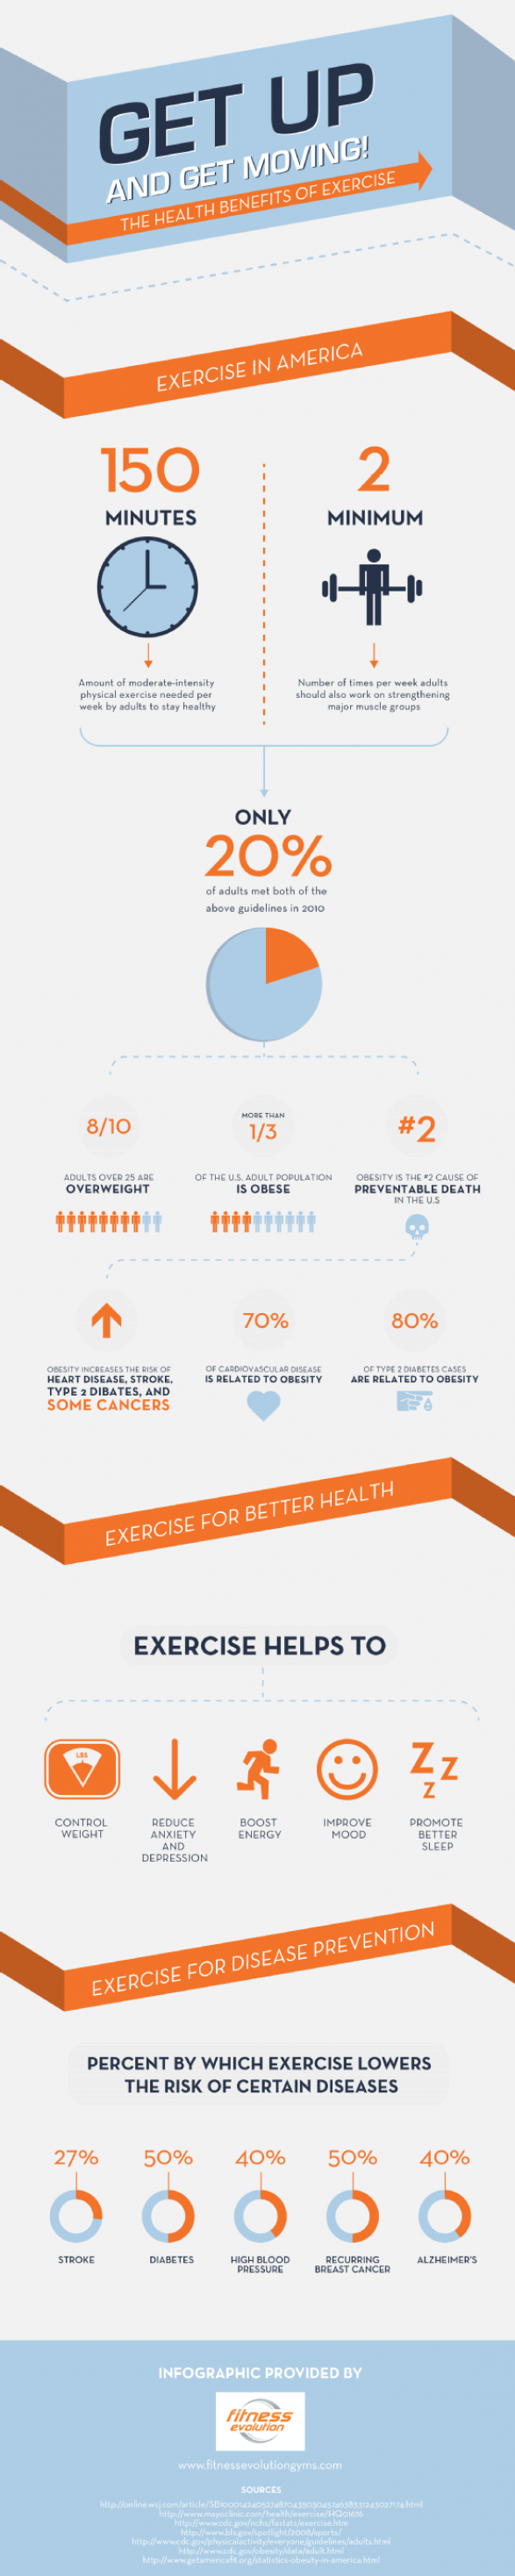 Get Up and Get Moving! The Health Benefits of Exercise